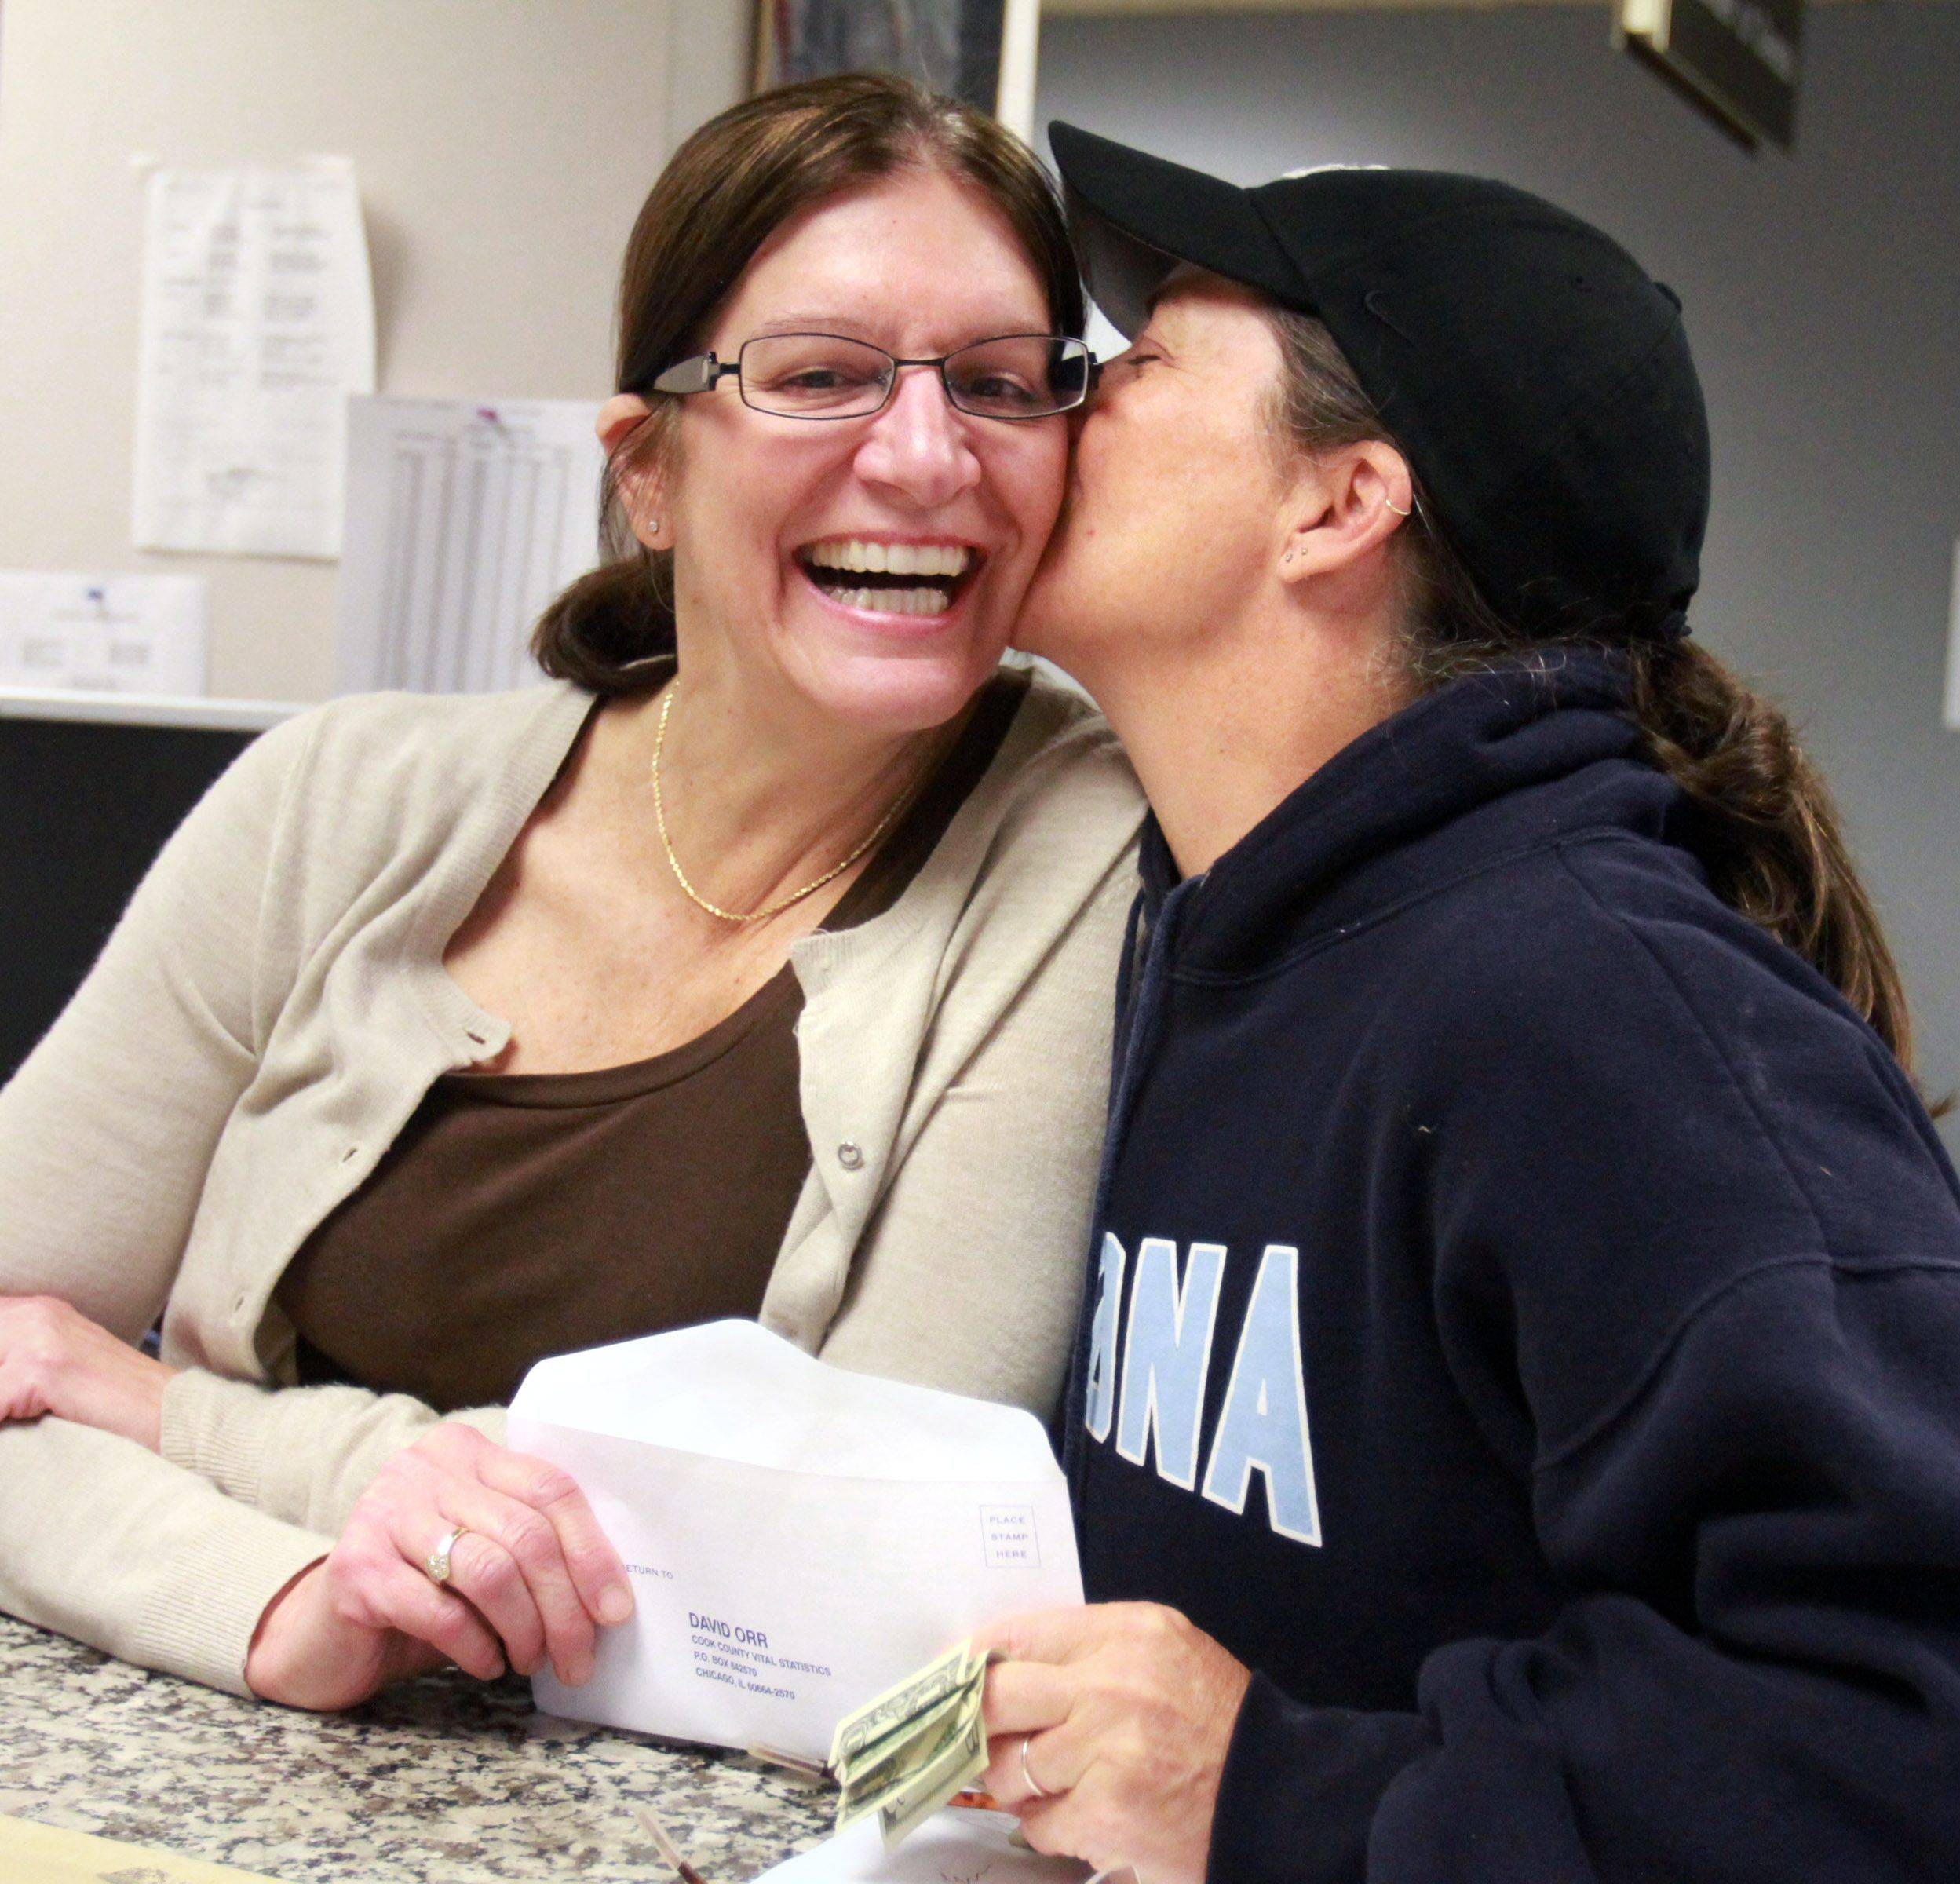 Peggy Ognacevic and Lisa Notarnicola, both of Algonquin, share a moment after receiving their civil union license from Lana Yacilla, supervisor in the Bureau of Vital Statistics office, at the Cook County Court House in Rolling Meadows on Wednesday, June 1st.